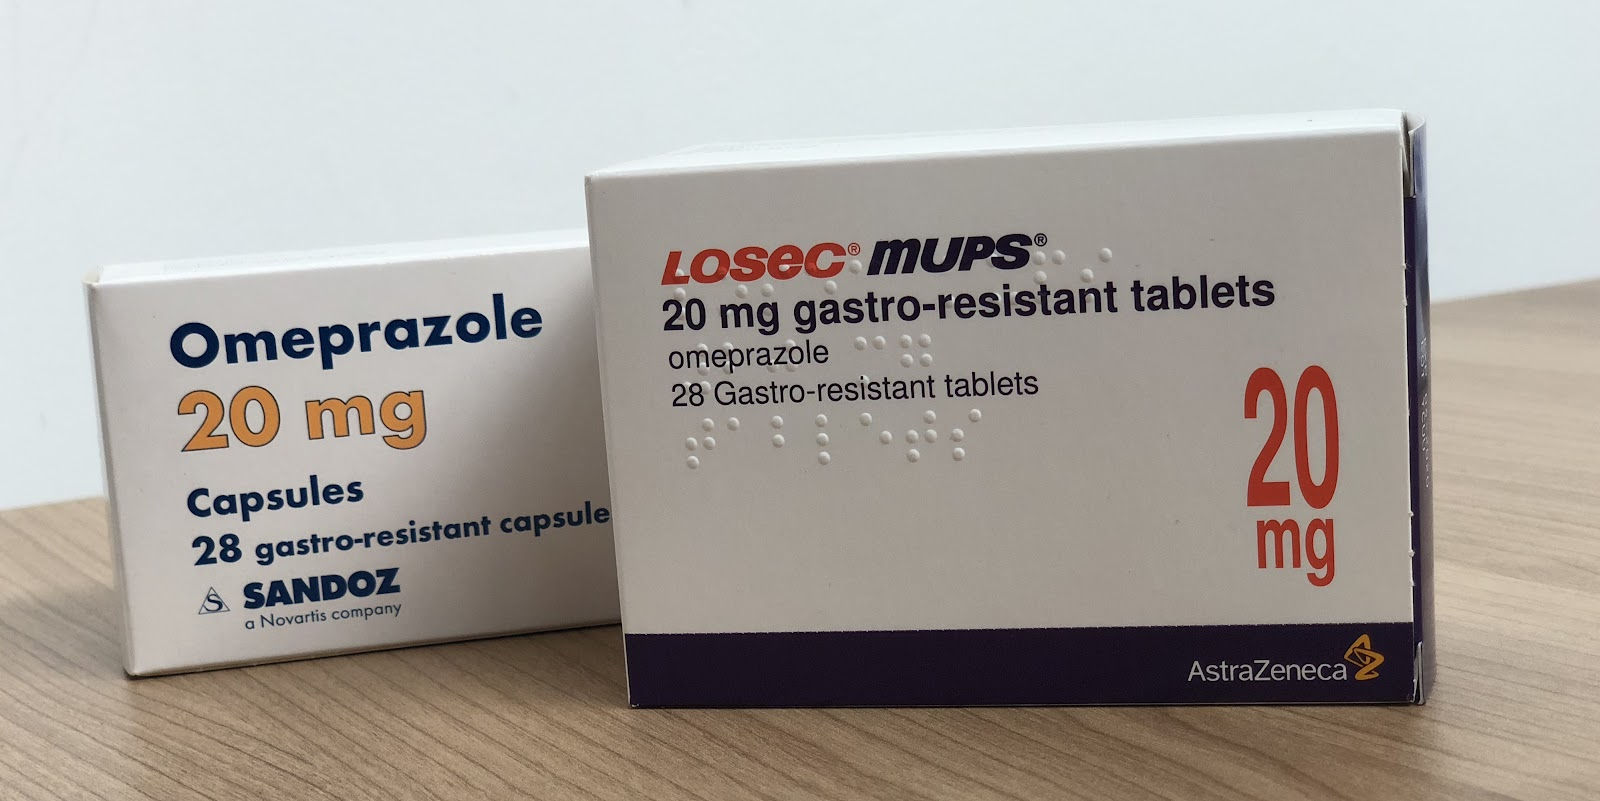 Generic-vs-brand-name-omeprazole-and-Losec